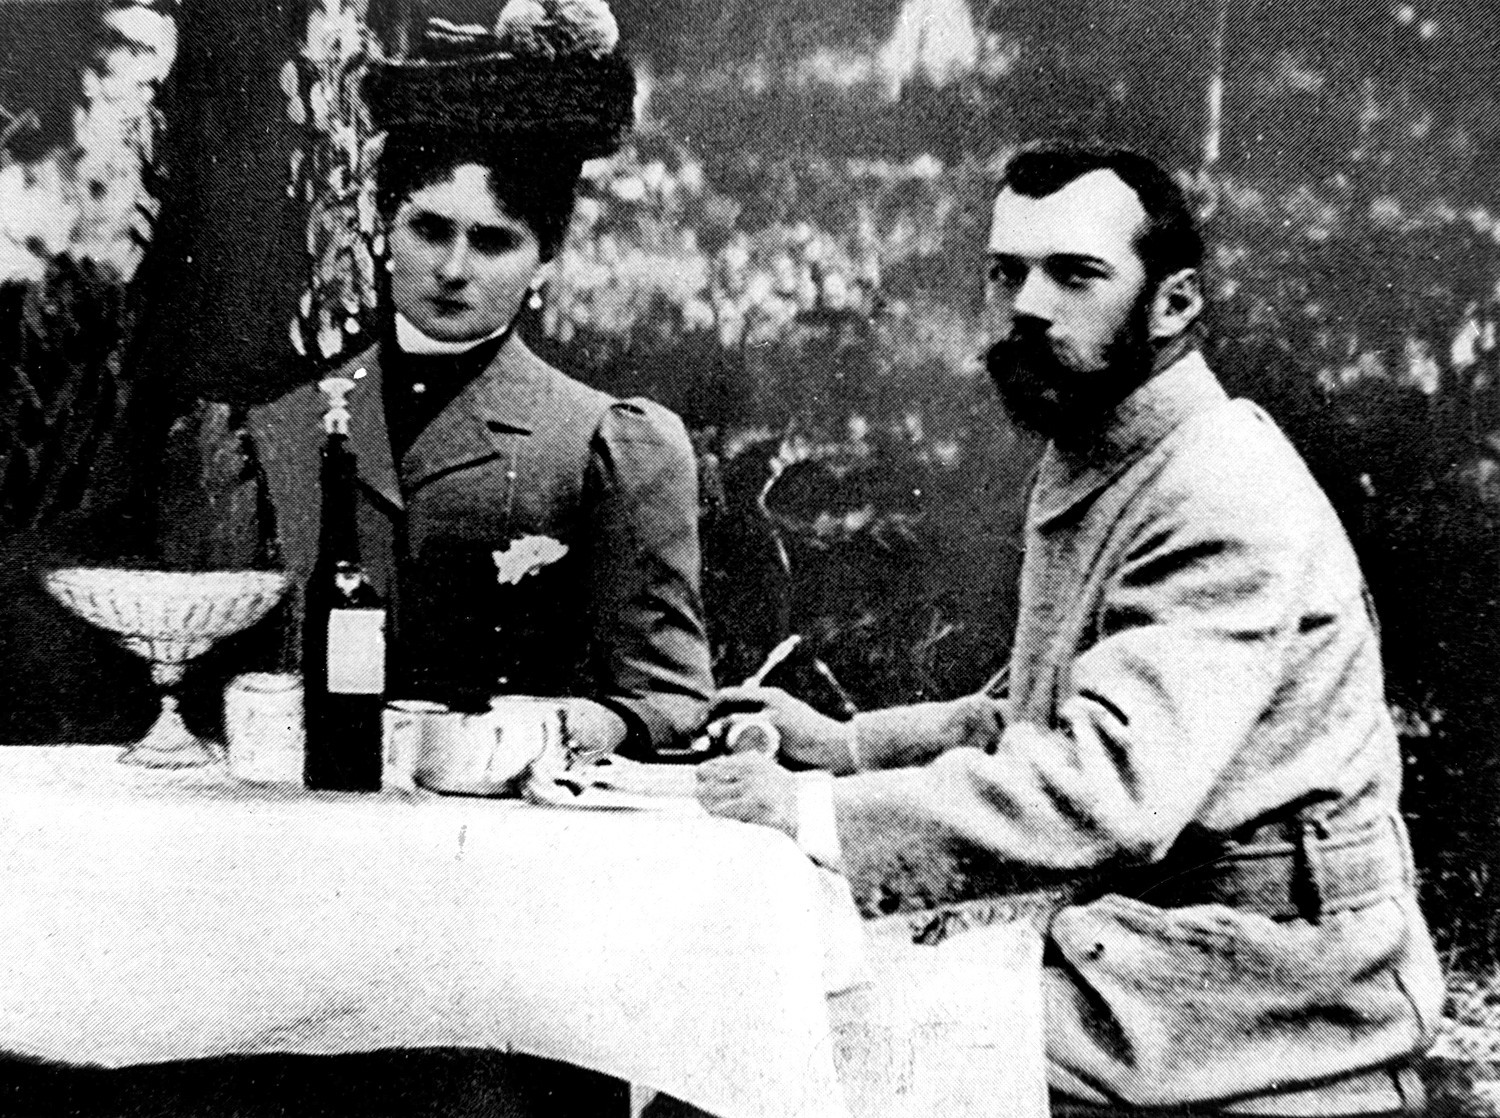 Nicholas II and his wife Alexandra Fedorovna at the table